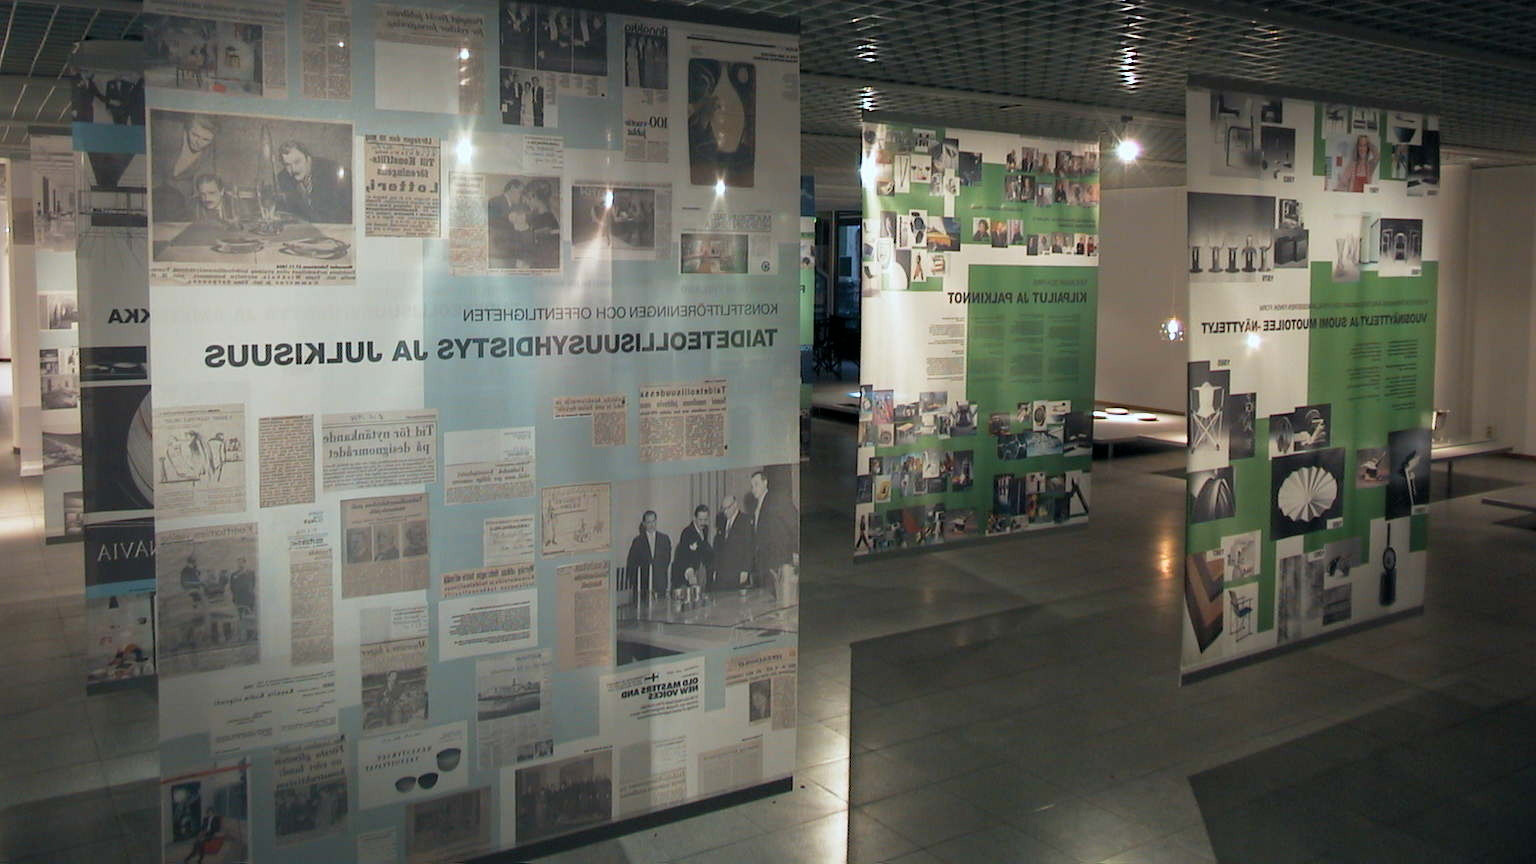 Design-Forum-Finland-Helsinki-GI-project